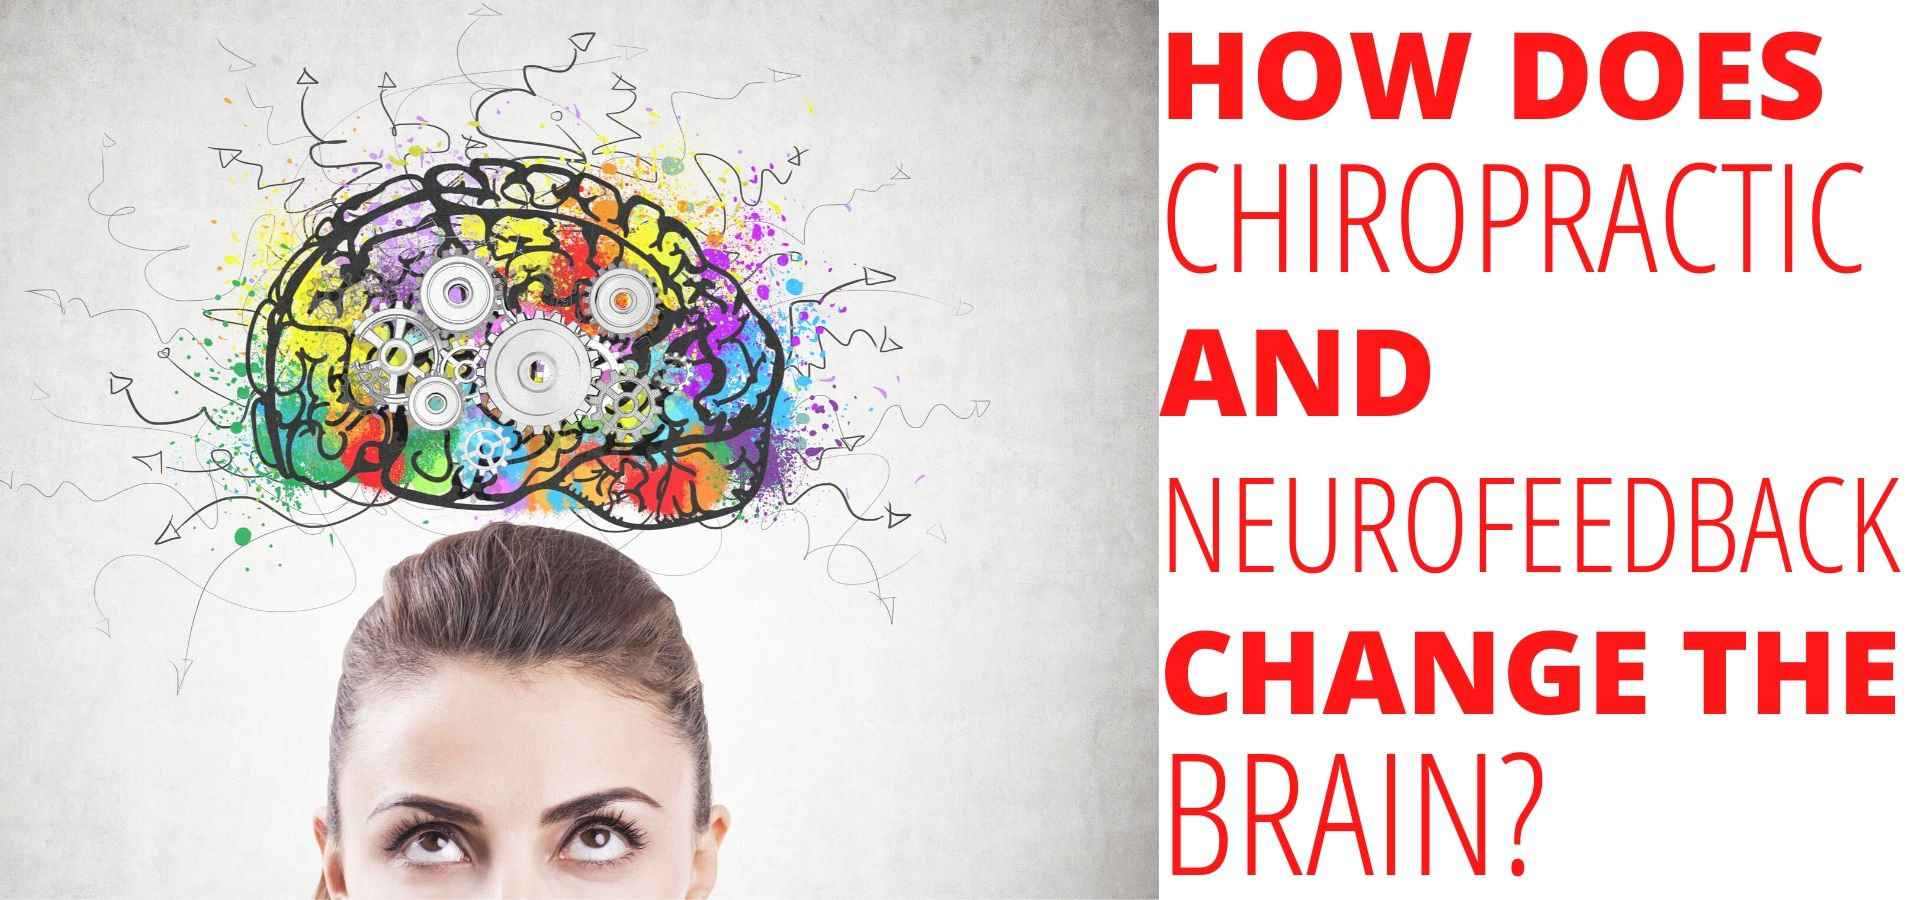 HOW DOES CHIROPRACTIC AND NEUROFEEDBACK CHANGE THE BRAIN